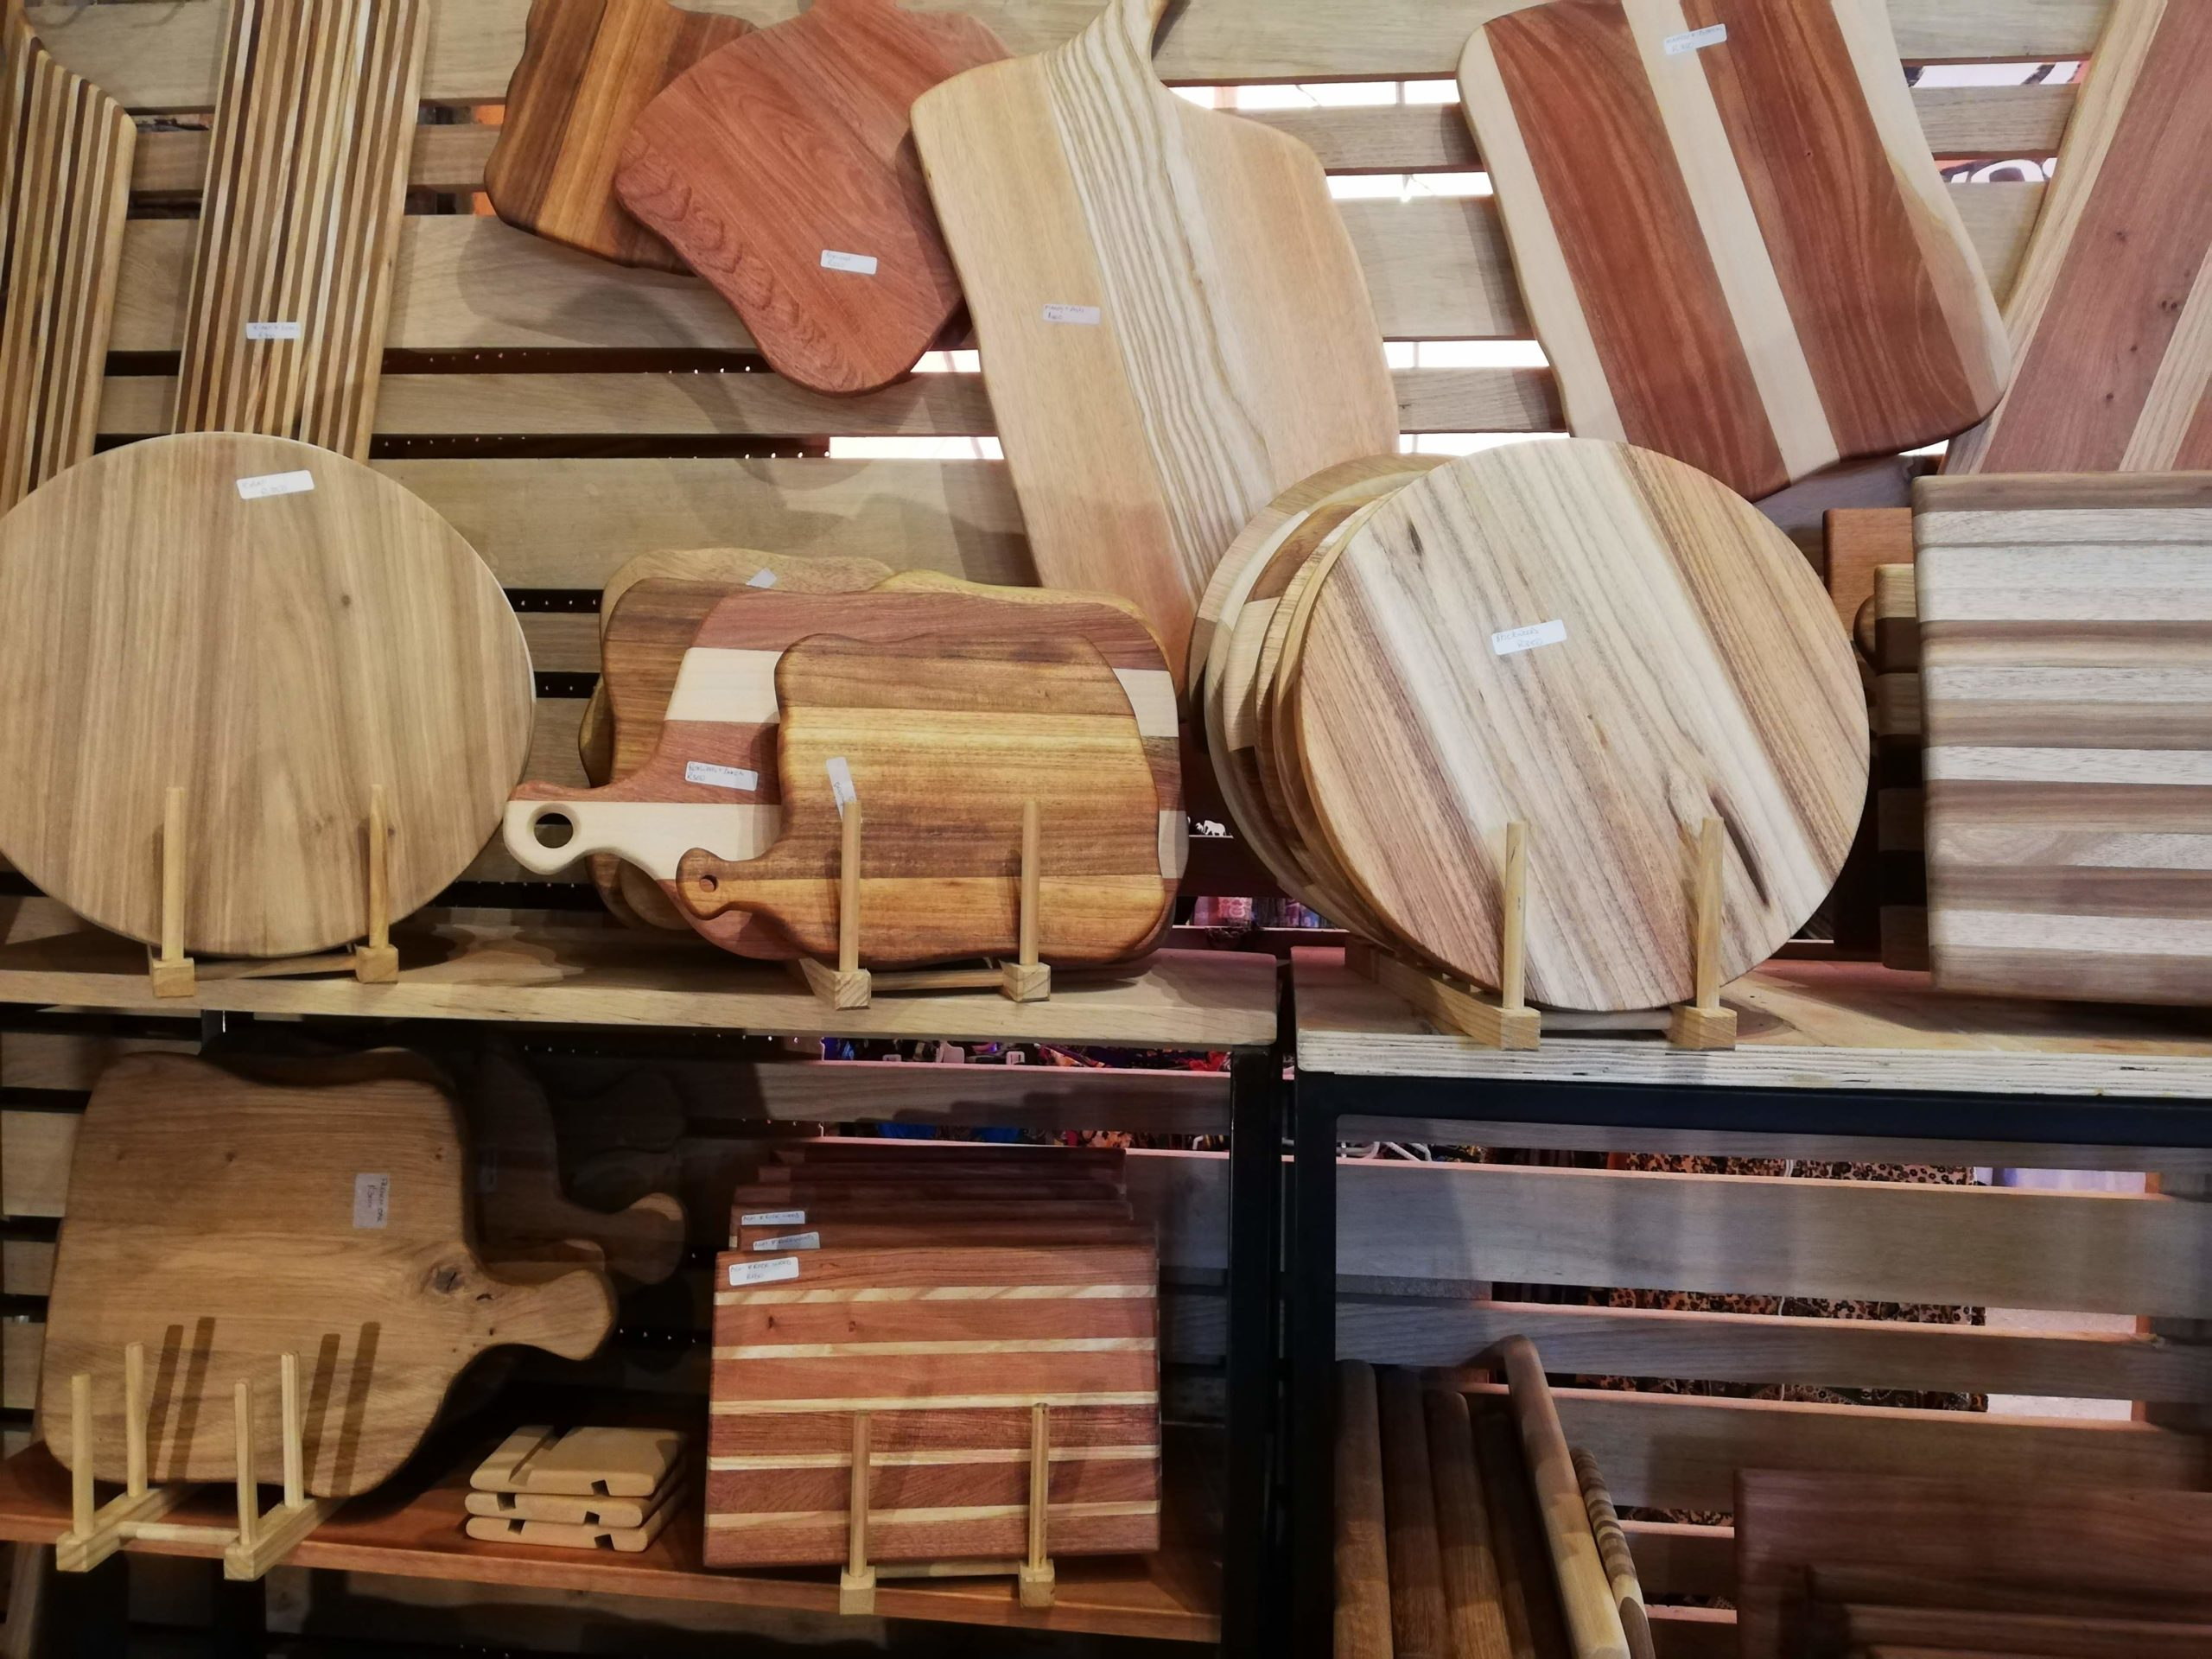 Whyni wood products